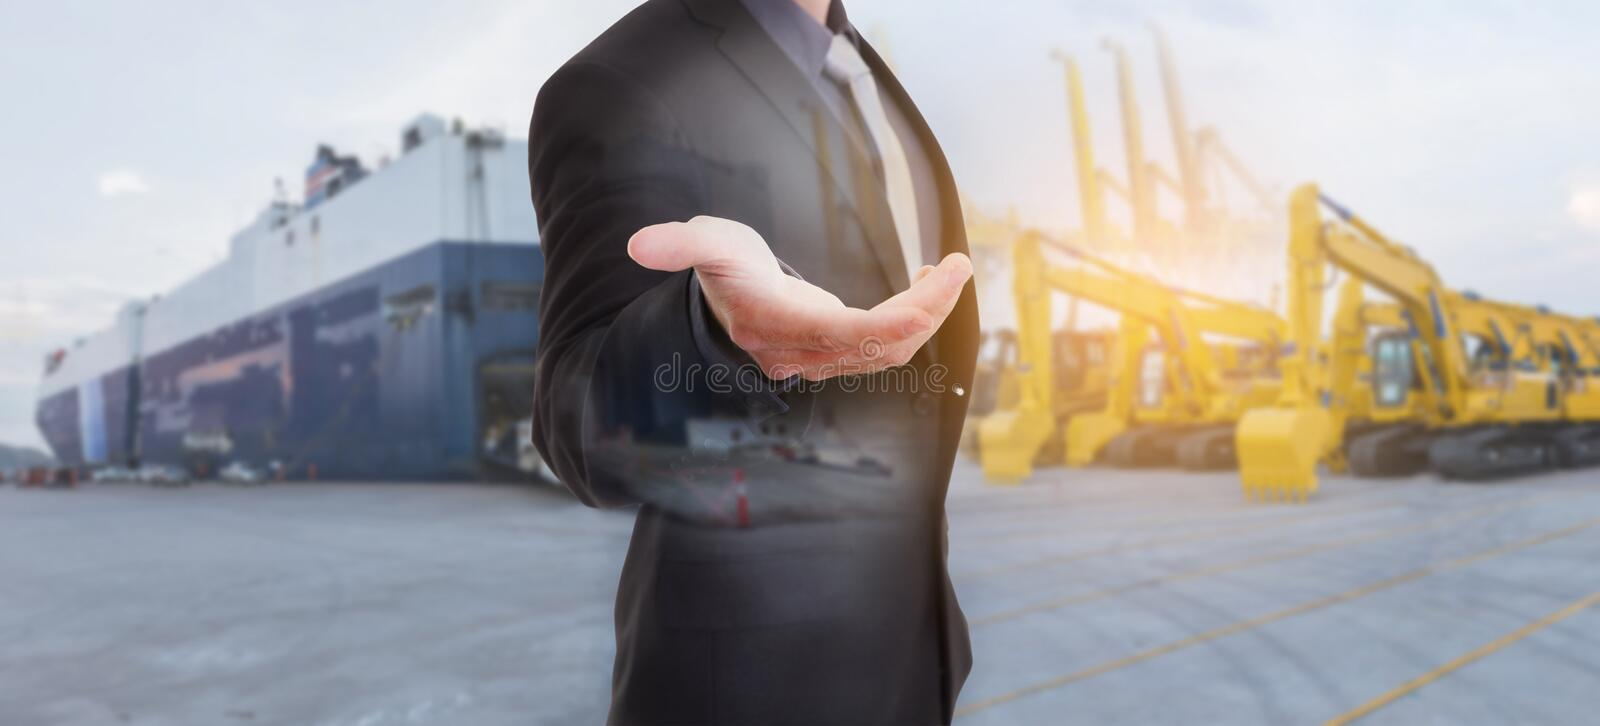 Businessman against logistics Import Export Tracts vehicle. At harbor background with business chance concept royalty free stock photo